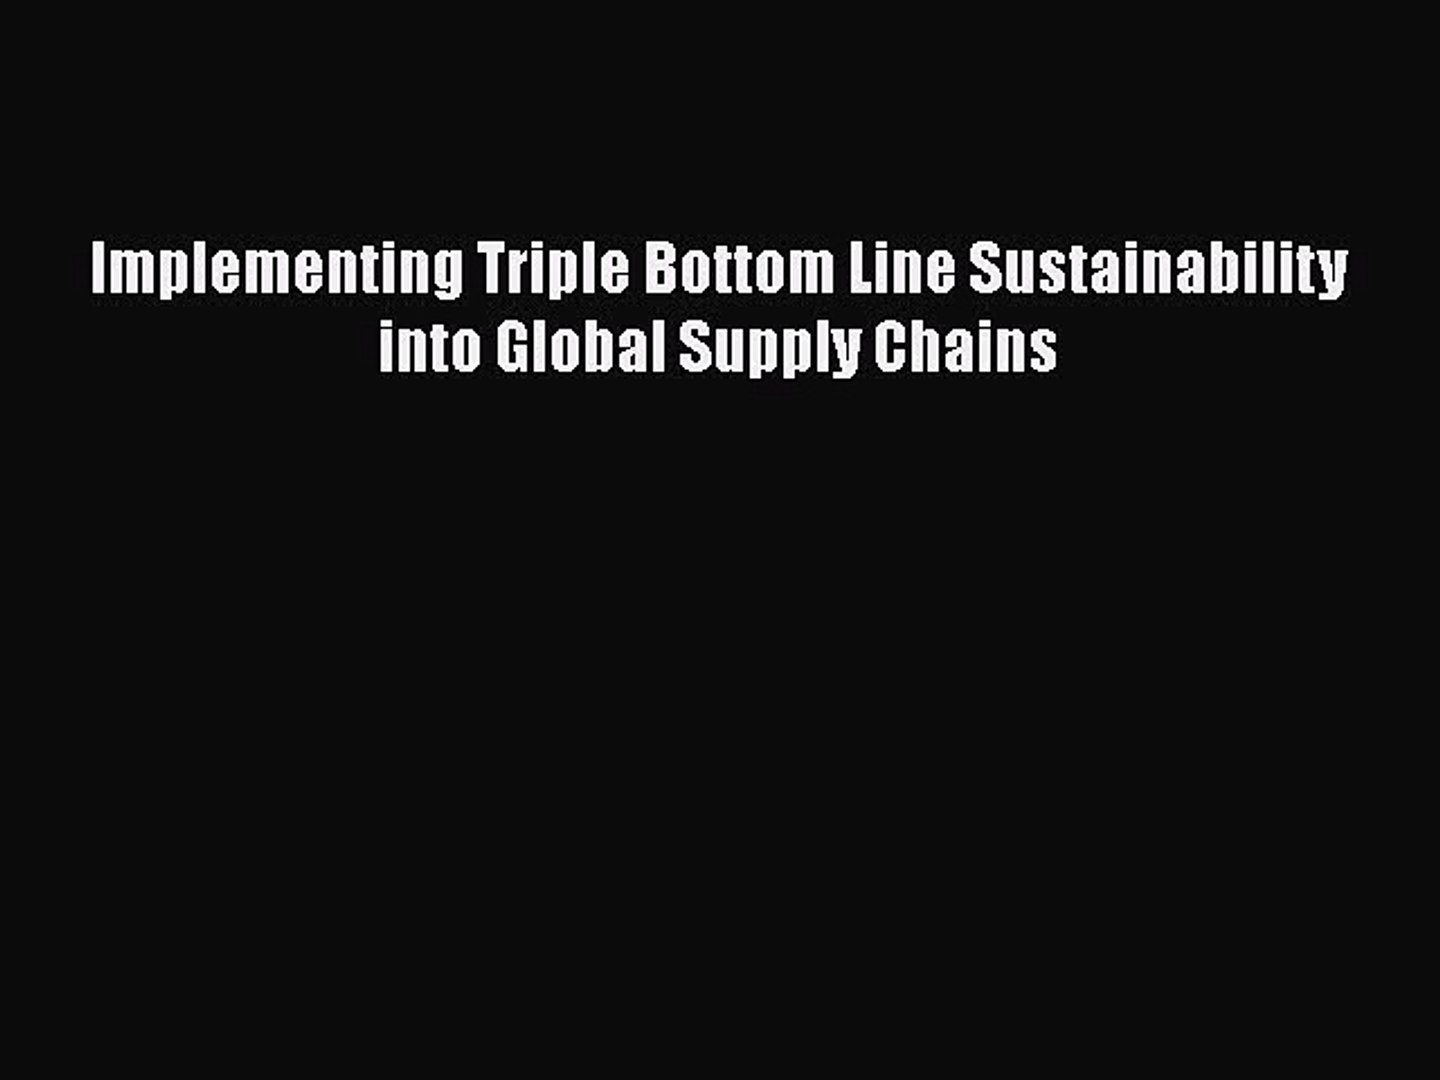 Read Implementing Triple Bottom Line Sustainability into Global Supply Chains Ebook Free